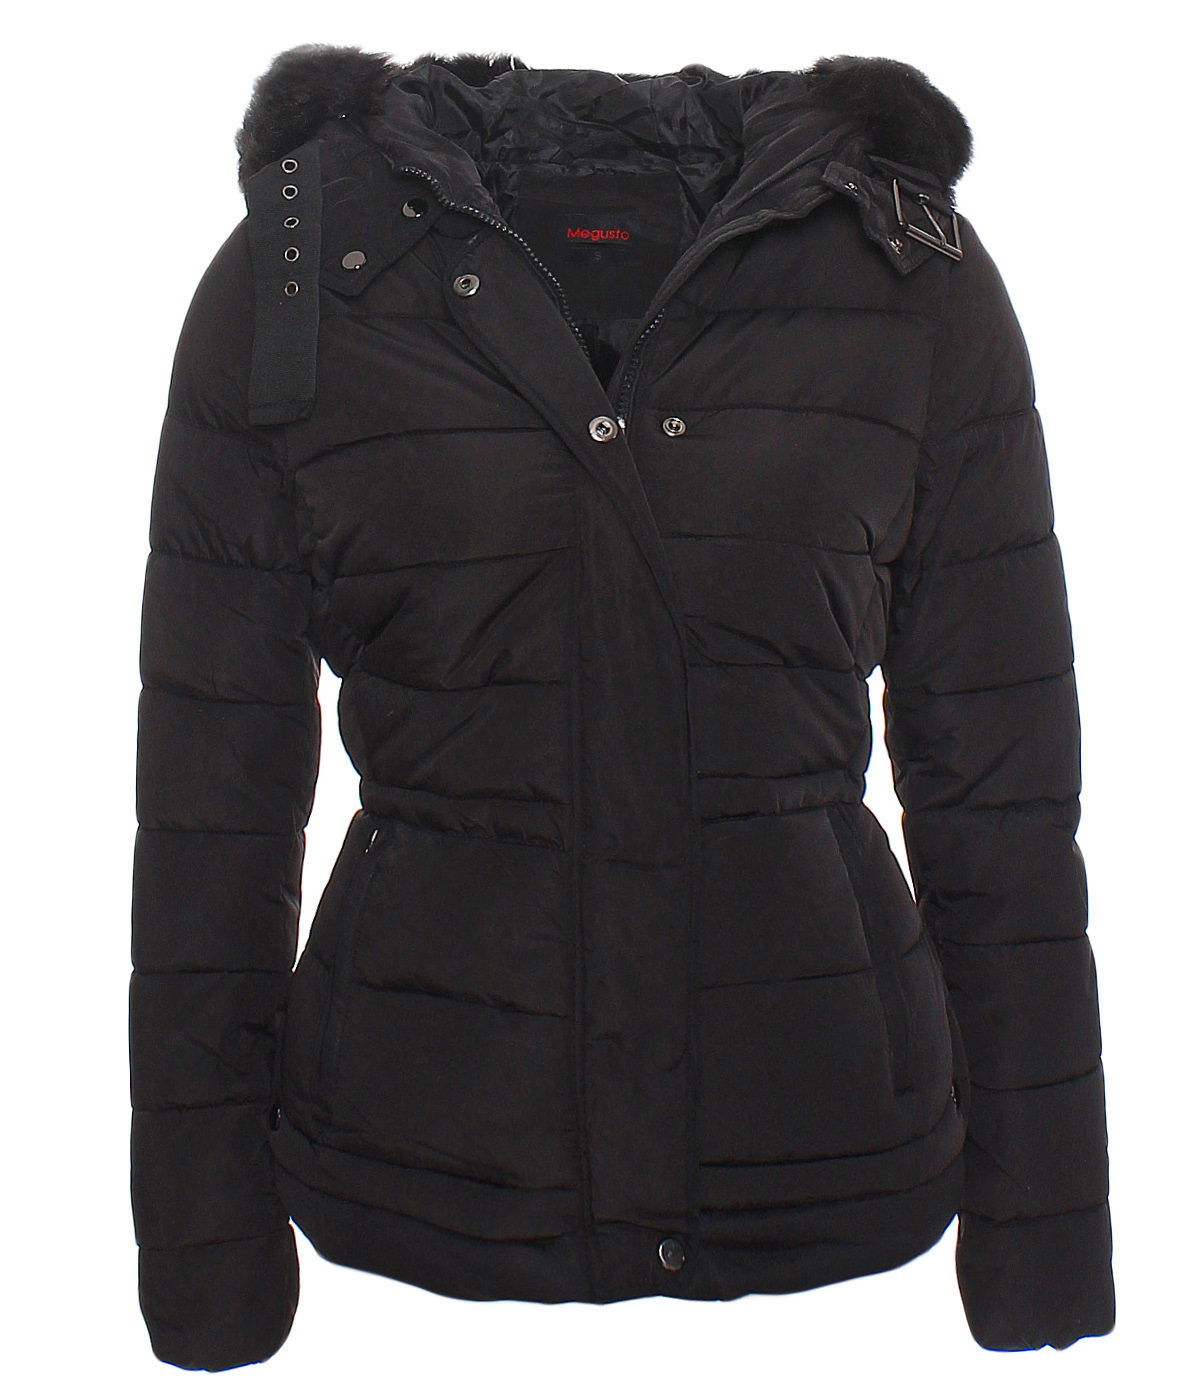 dv 051 damen wintermantel winterjacke steppjacke daunen stepp kurz parka jacke ebay. Black Bedroom Furniture Sets. Home Design Ideas